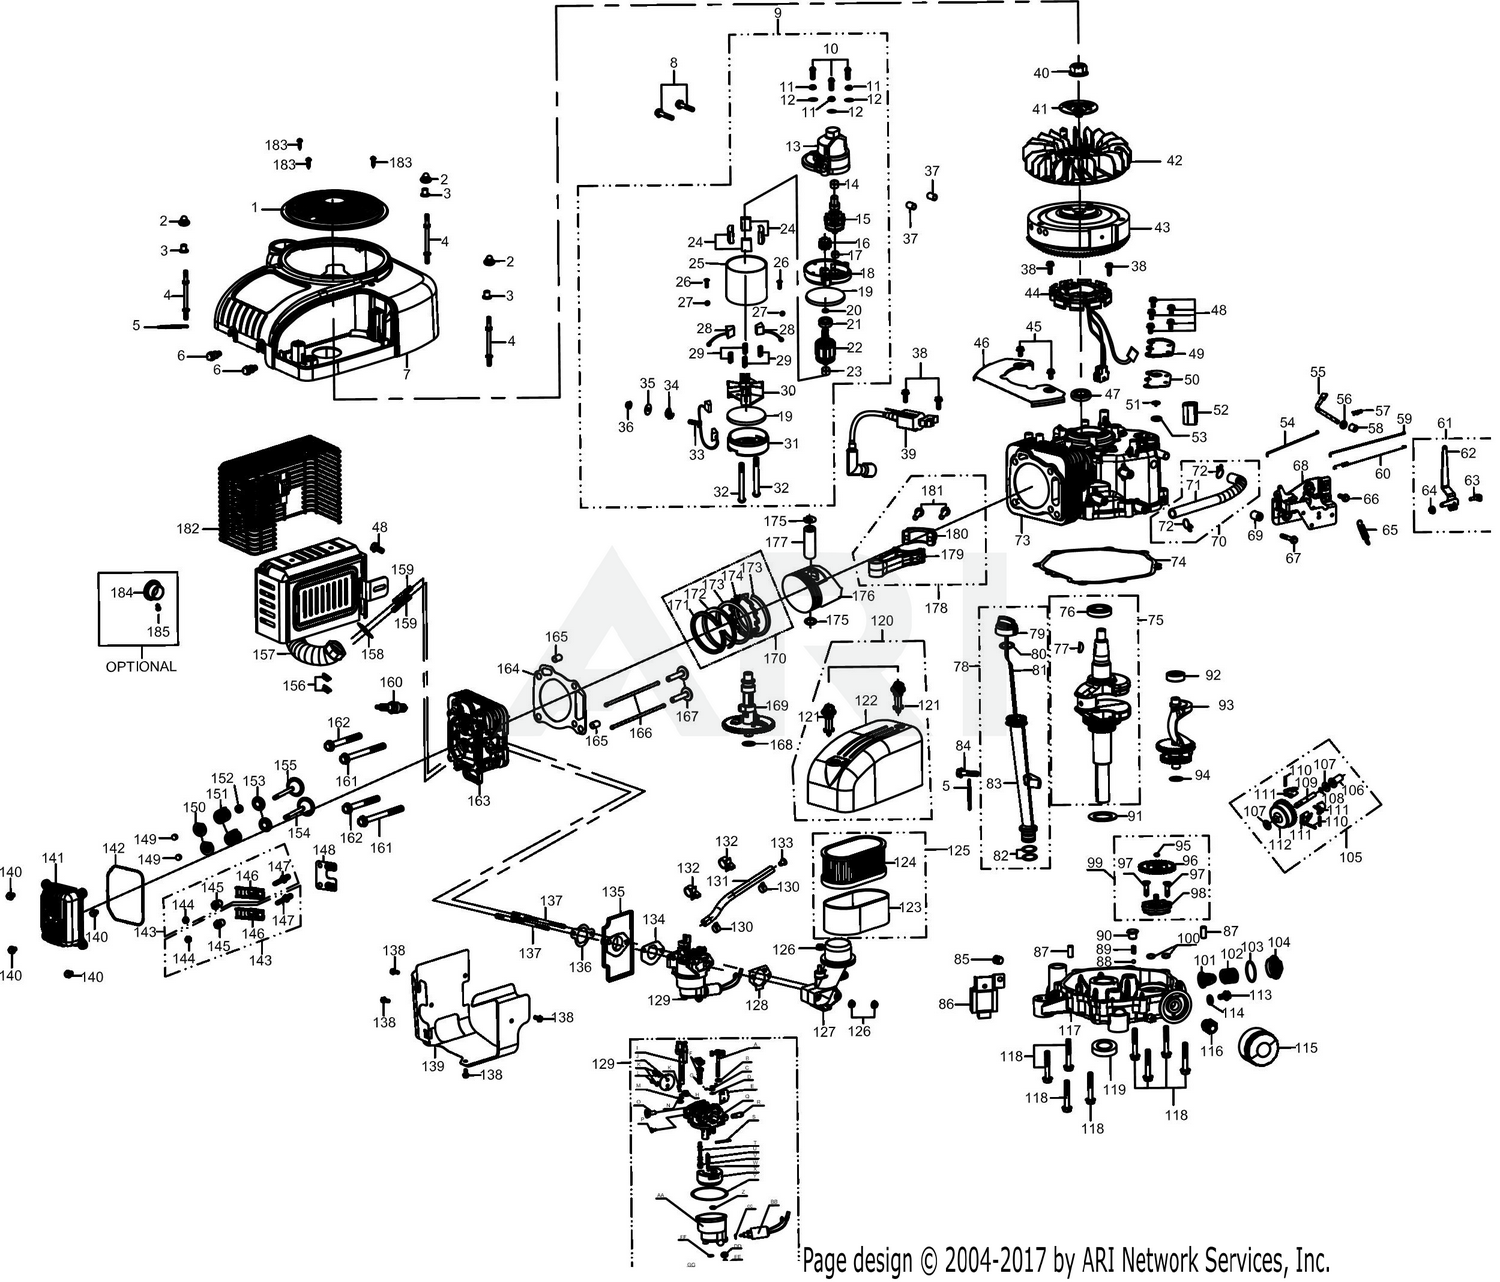 Ignition Predator 420Cc Engine Wiring Diagram from cdn.datamanager.arinet.com